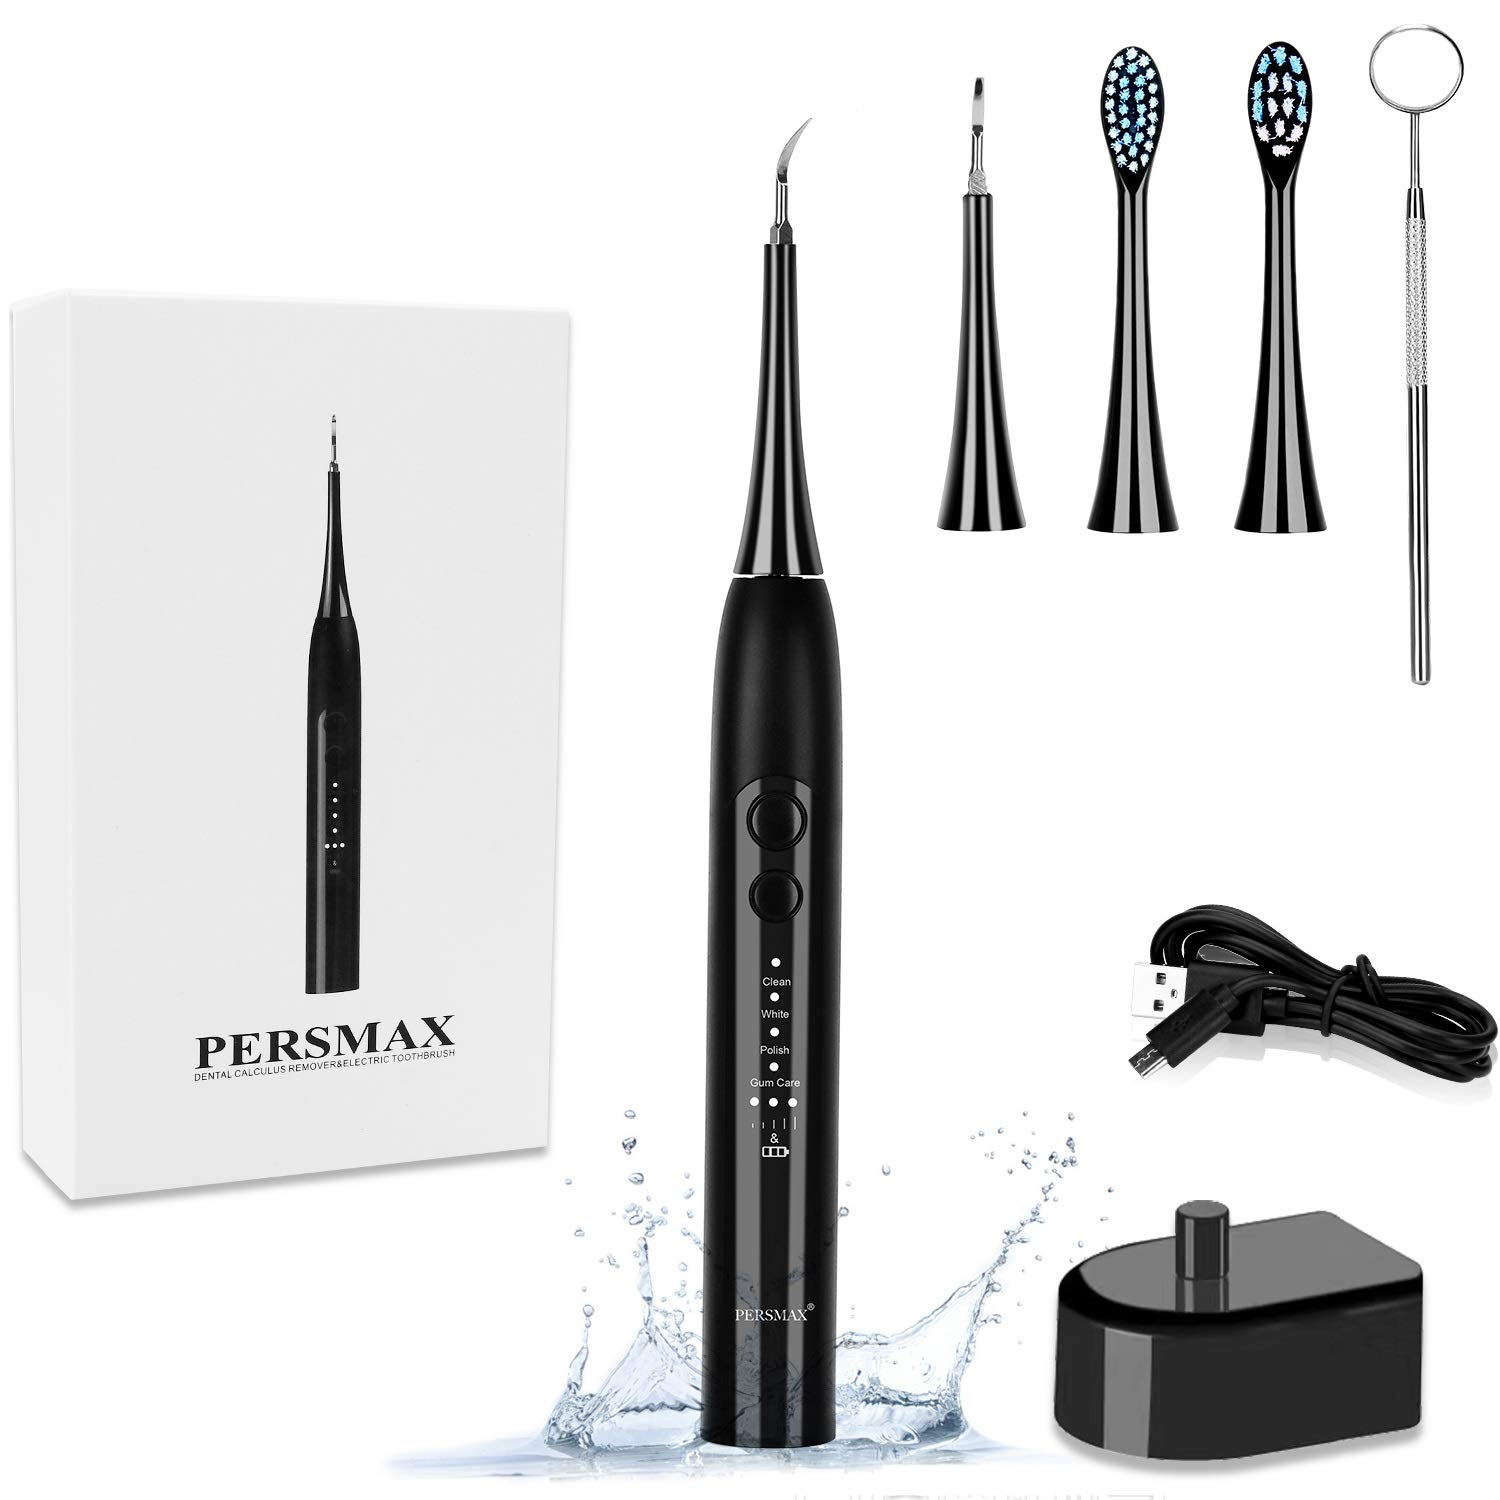 PERSMAX Electric Dental Calculus Remover, Sonic Tooth Tartar Scraper Cleaning Tools with 4 Replaceable Clean Heads, 4 Adjustable Modes, Dental Picks Mirror, USB Charger, Black.